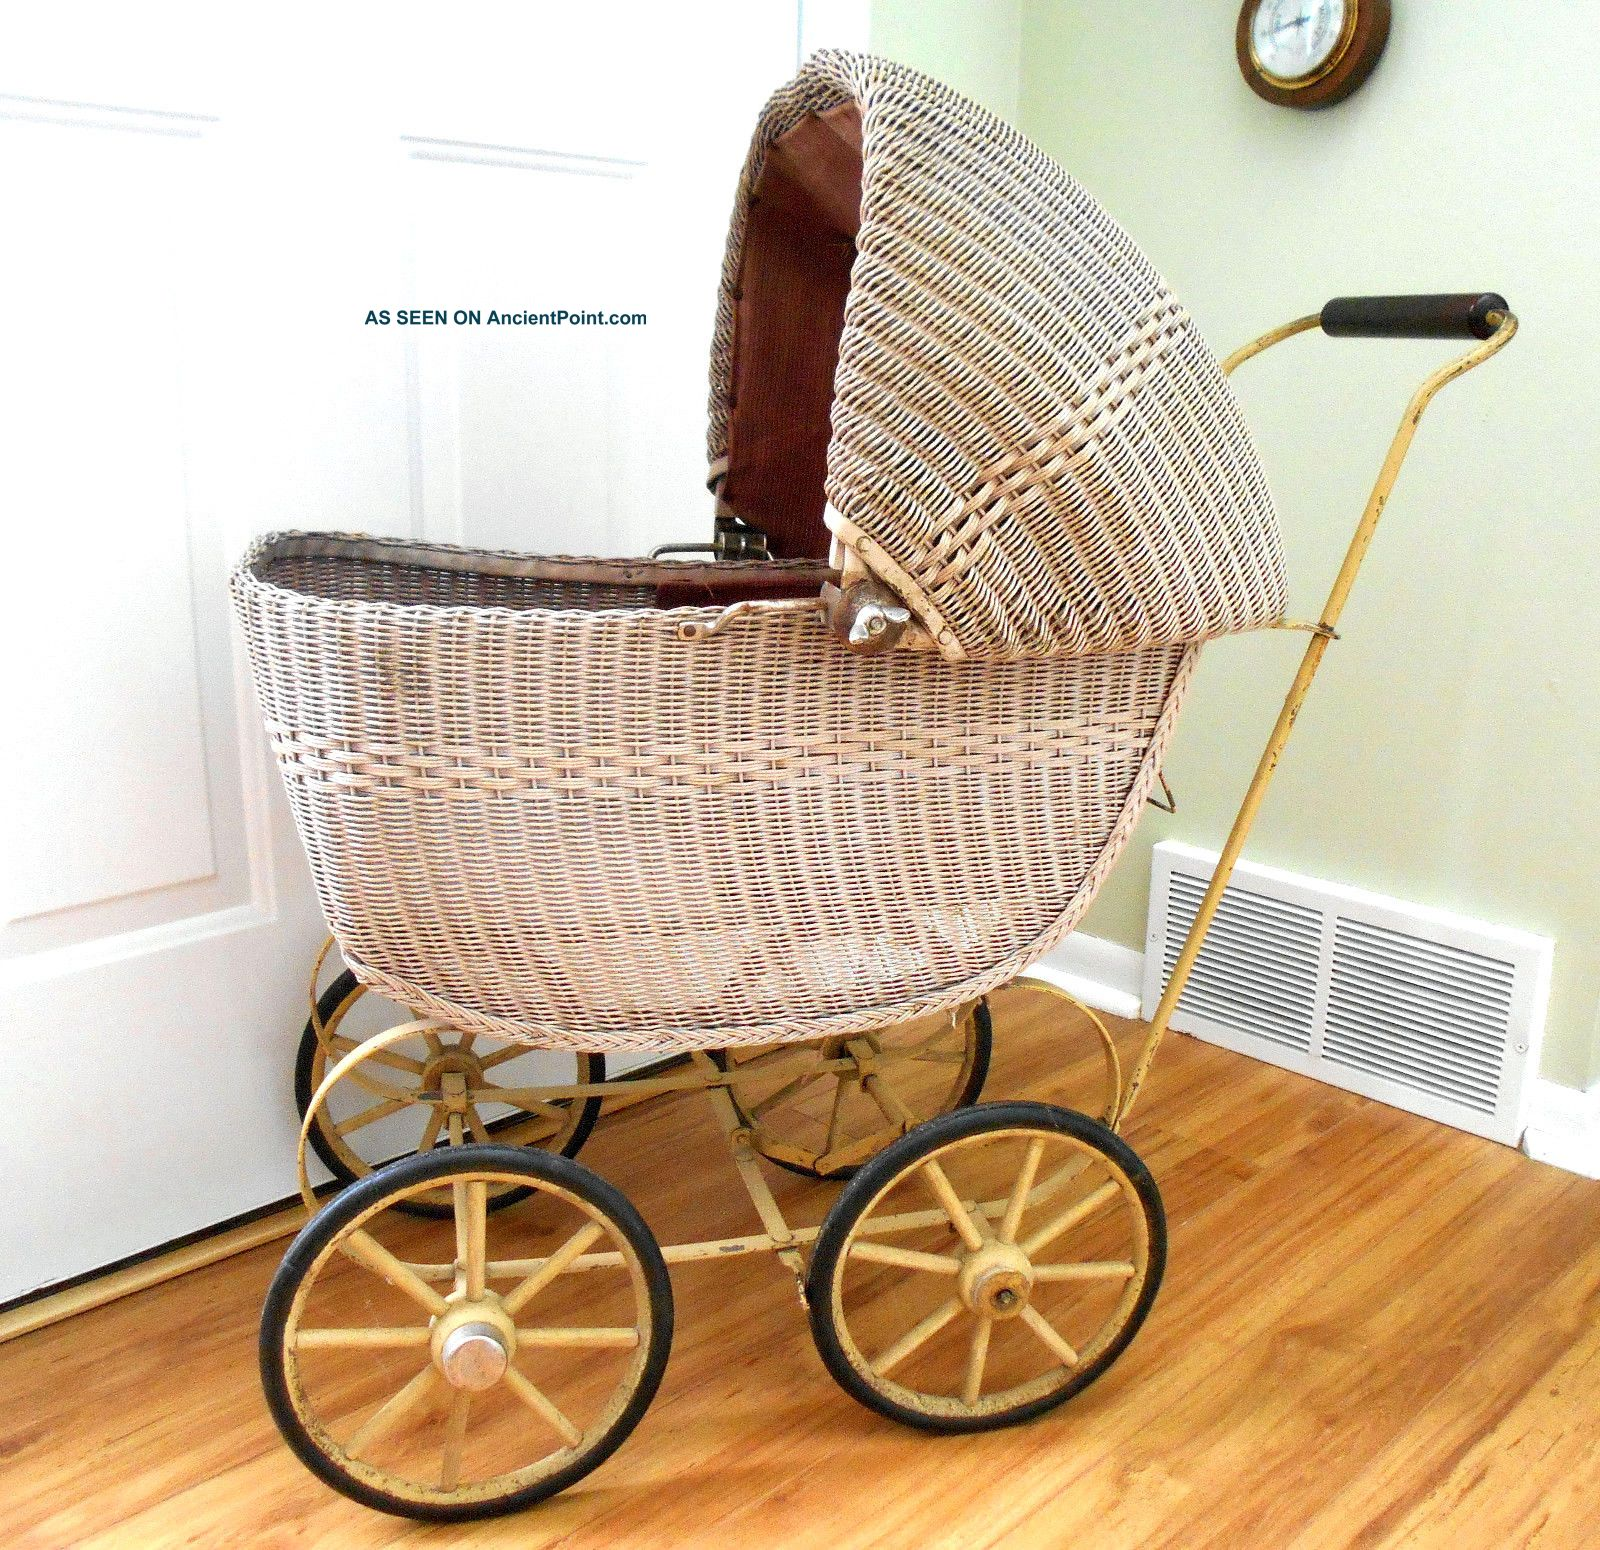 Lloyd Loom Baby Doll Buggy Carriage Pram Stroller Wicker Antique Vintage Baby Carriages & Buggies photo